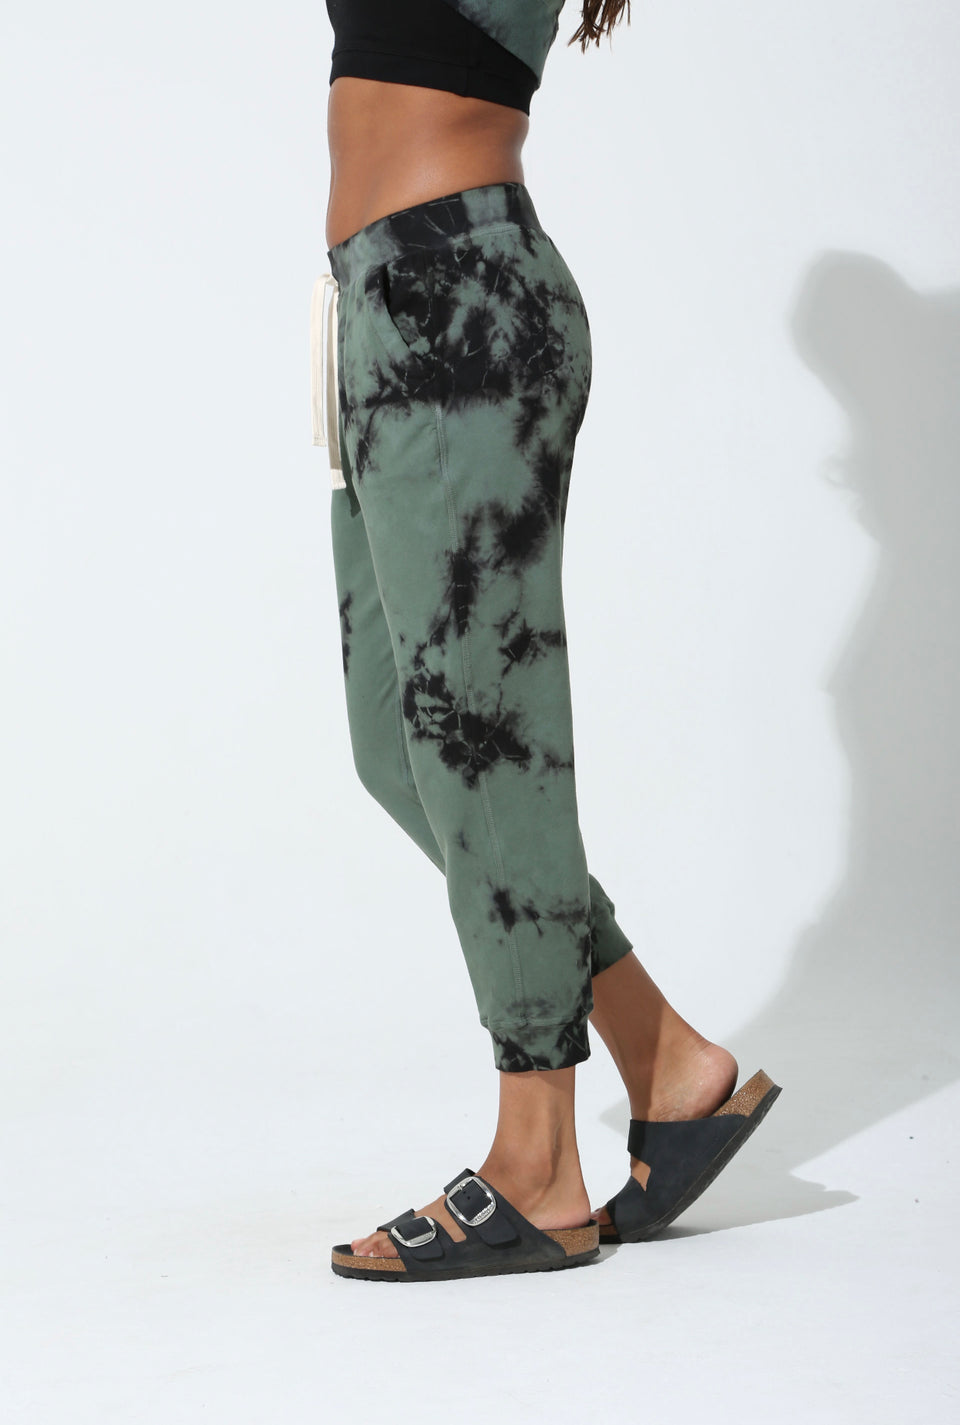 Electric & Rose Abbot Kinney Epic Camo/Onyx